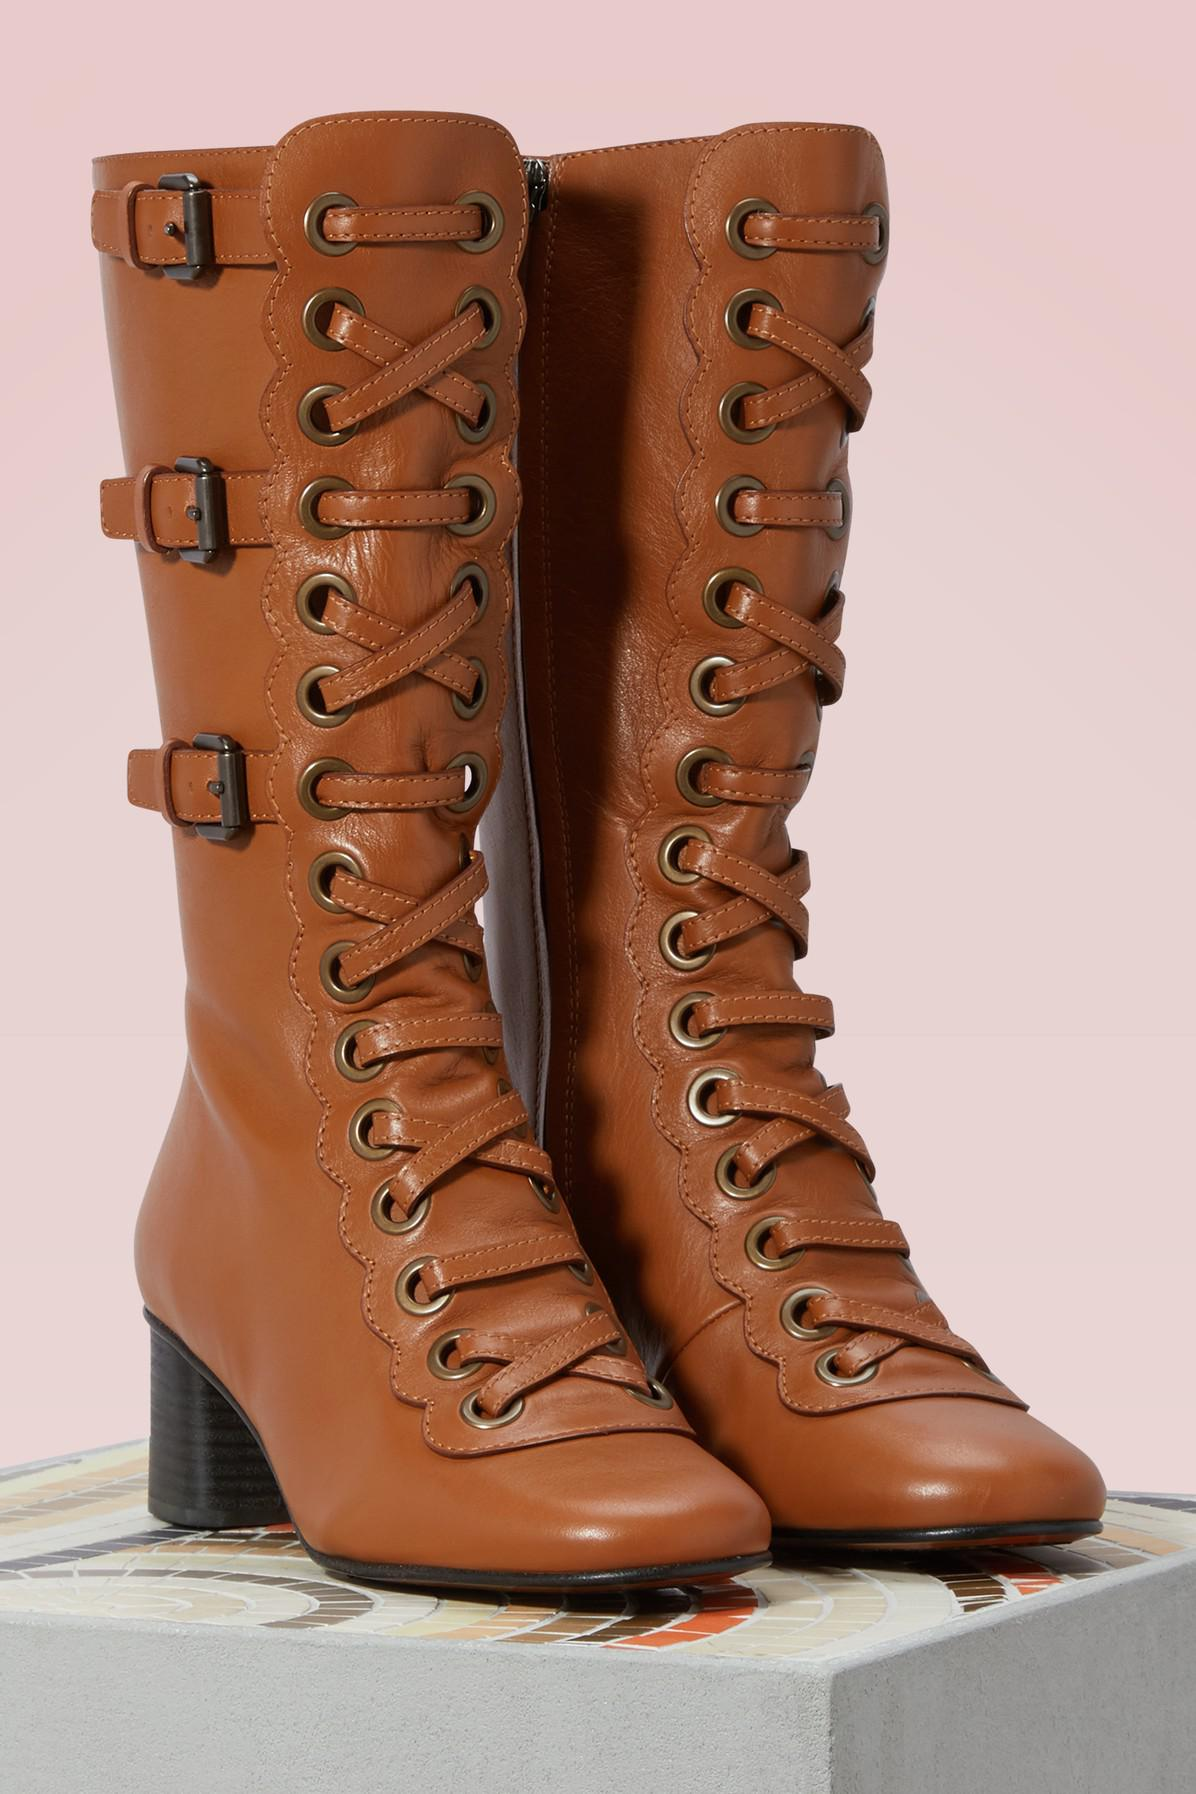 Chloé Orson Boots in Brown - Lyst